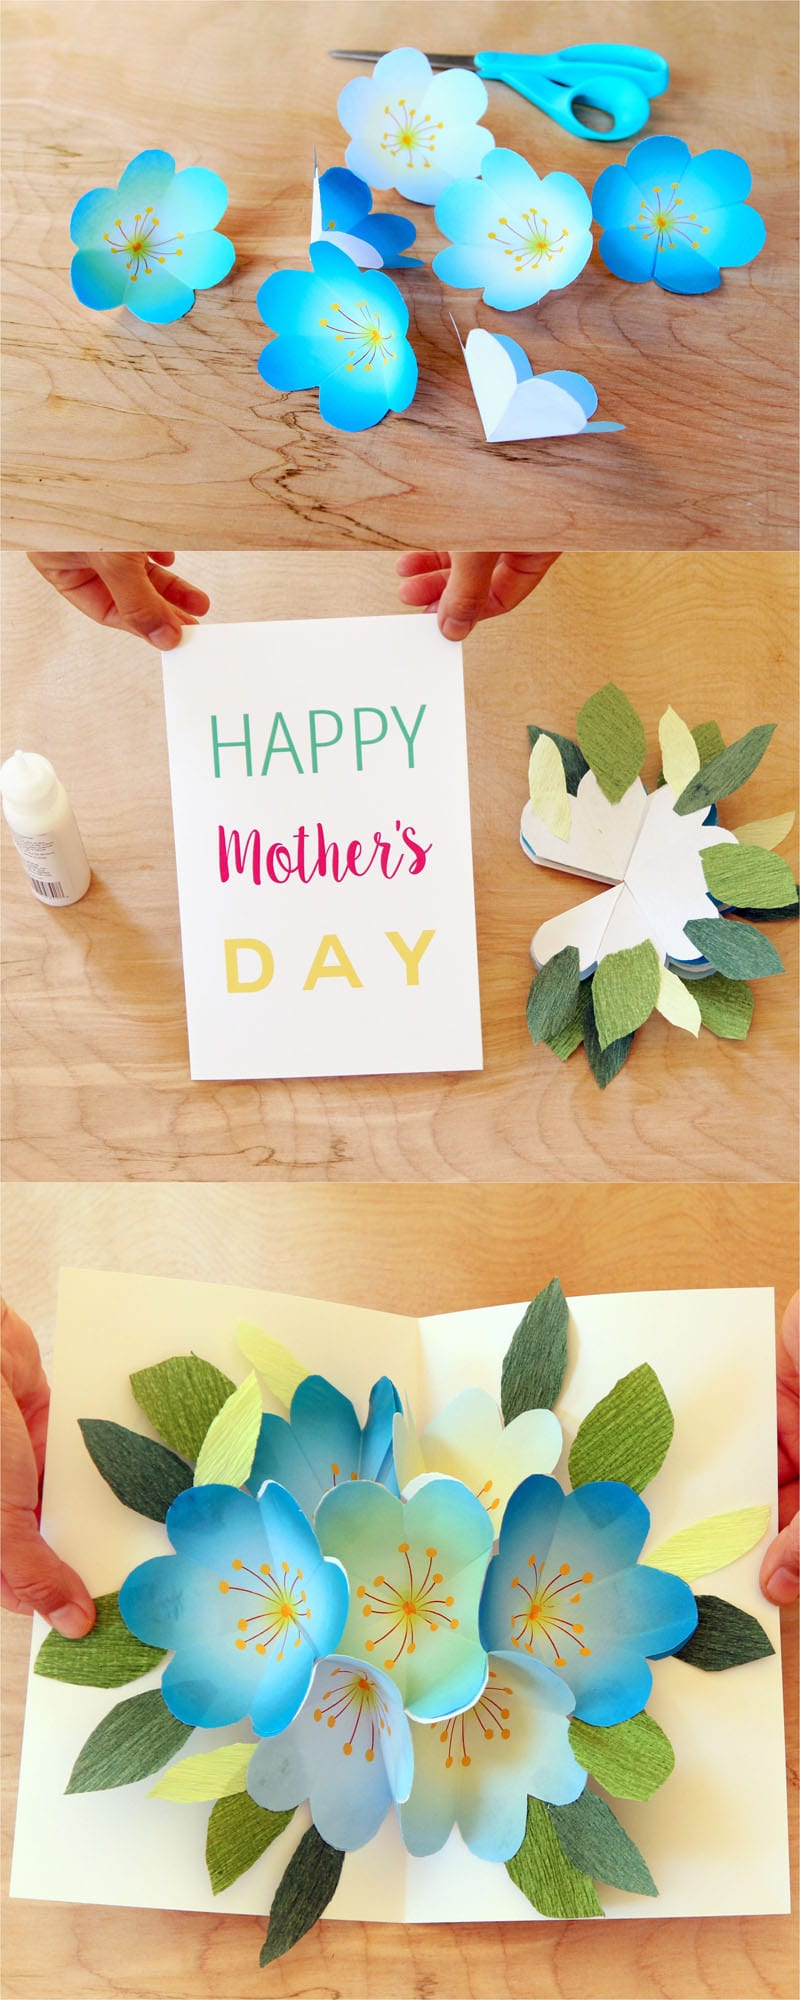 Pop up flowers diy printable mothers day card a piece of rainbow step 2 glue flowers together please check out the how to make pop up birthday card m4hsunfo